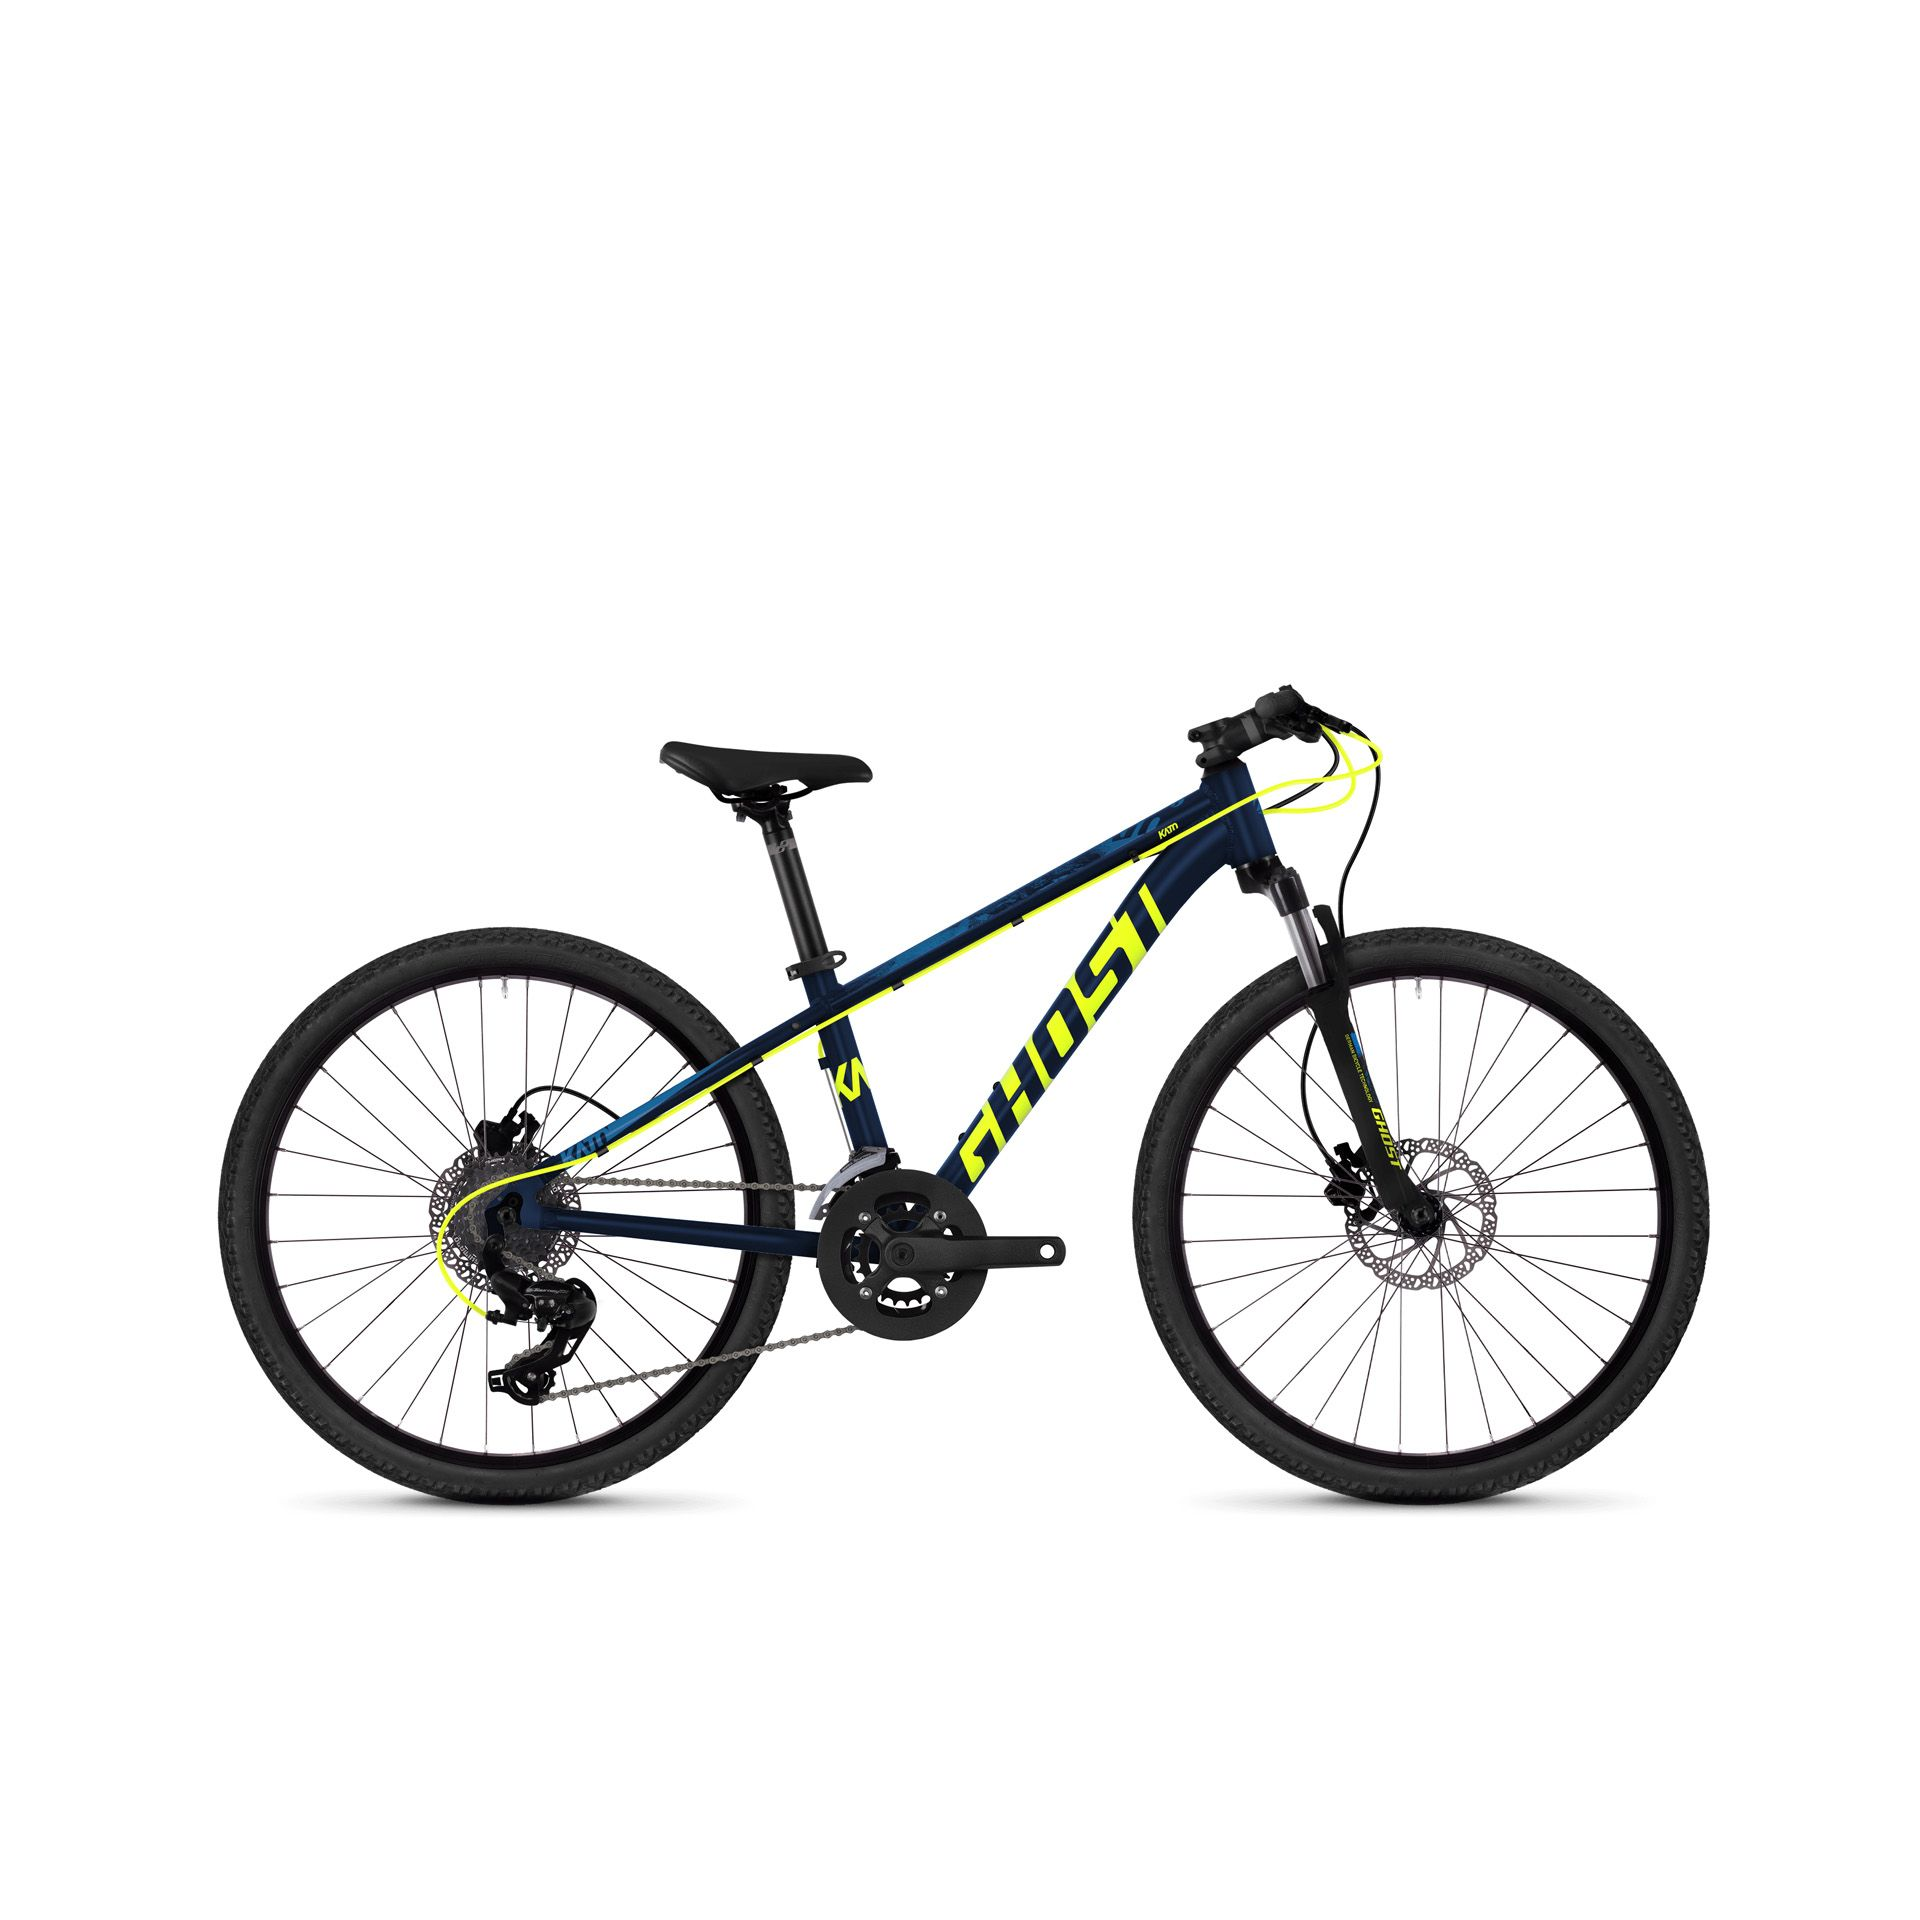 VTT semi-rigide Ghost Kato kid D 4.4 24 Bleu/Jaune